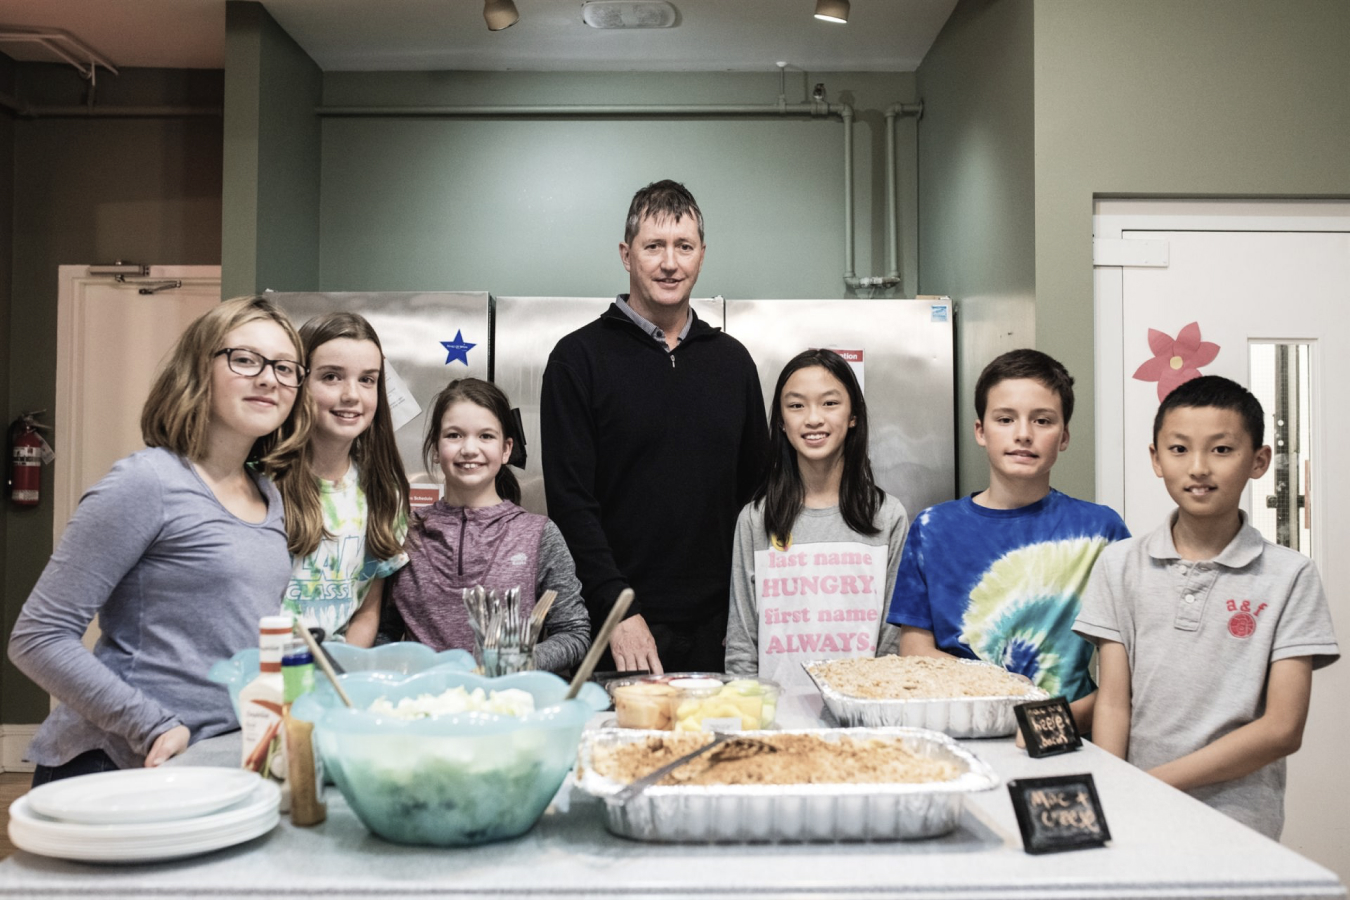 Gordon Stirrett with the Girl Scouts of Halifax